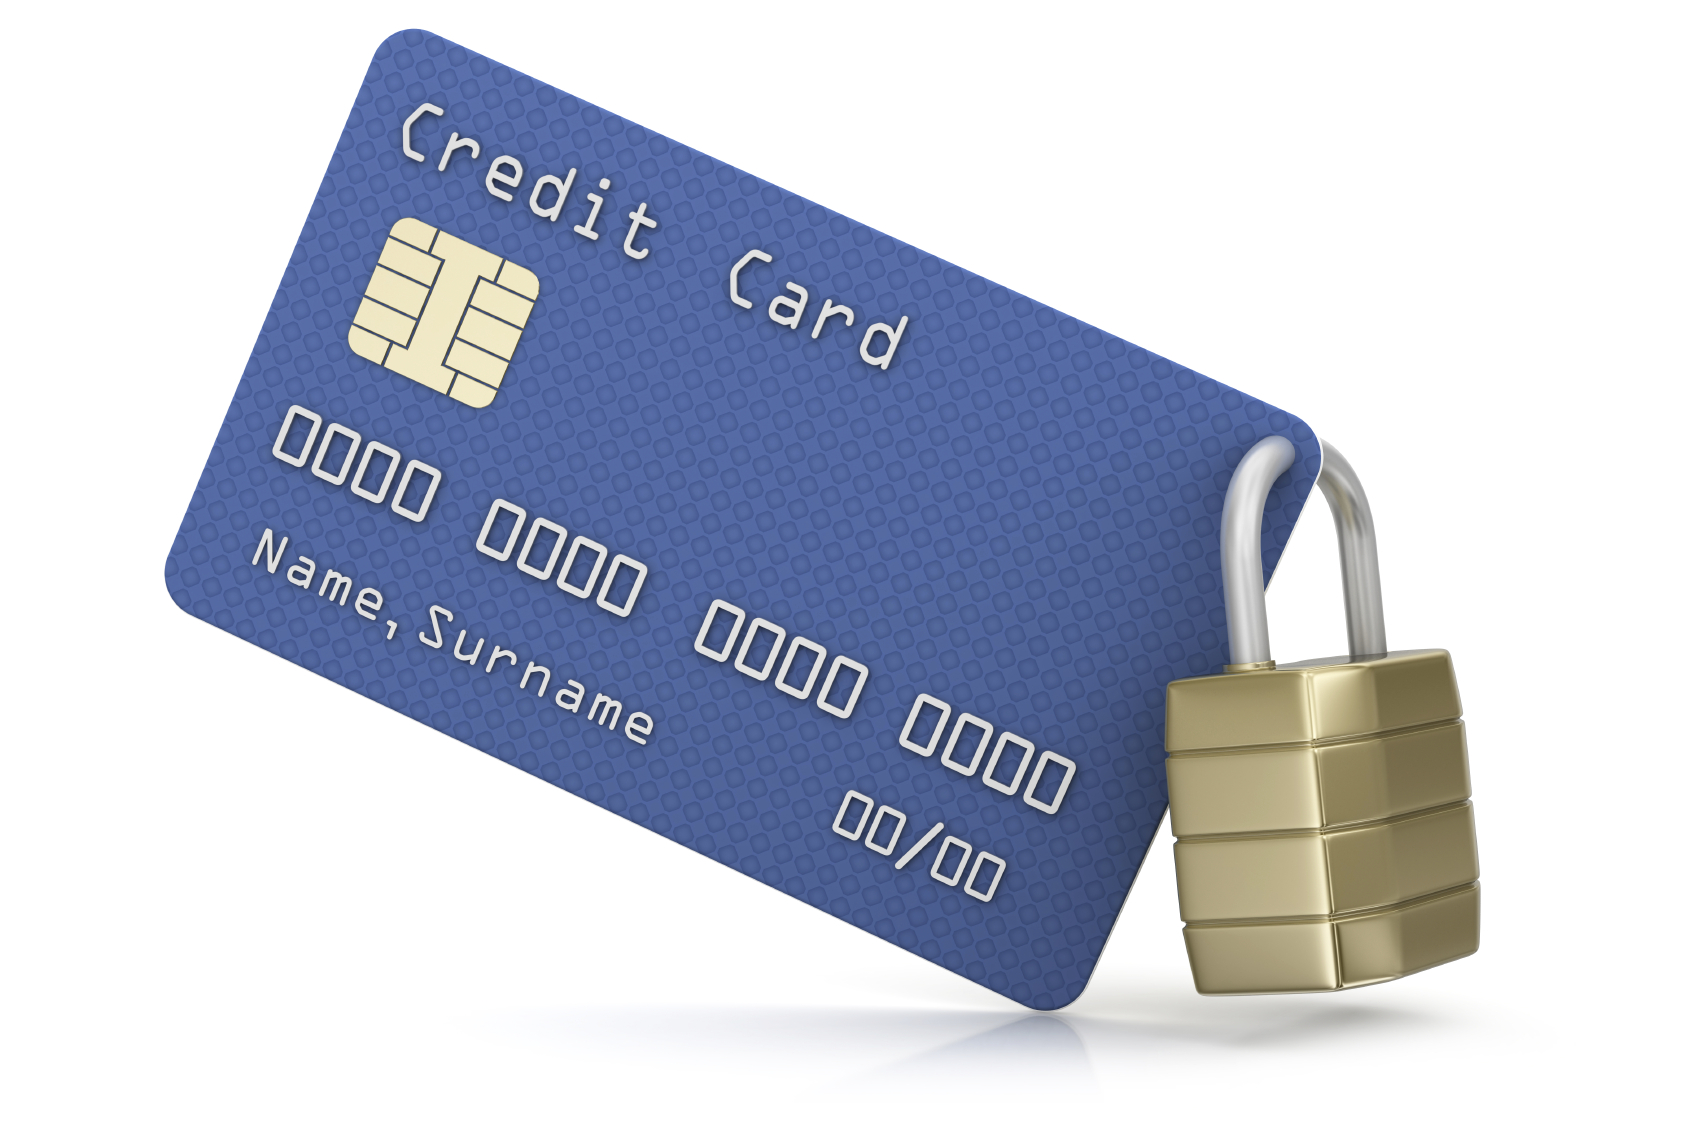 a discussion on the credit card policy issues General credit topics discussion guidelines advice on credit issue greatly appreciated credit cards and the score model used for approval.